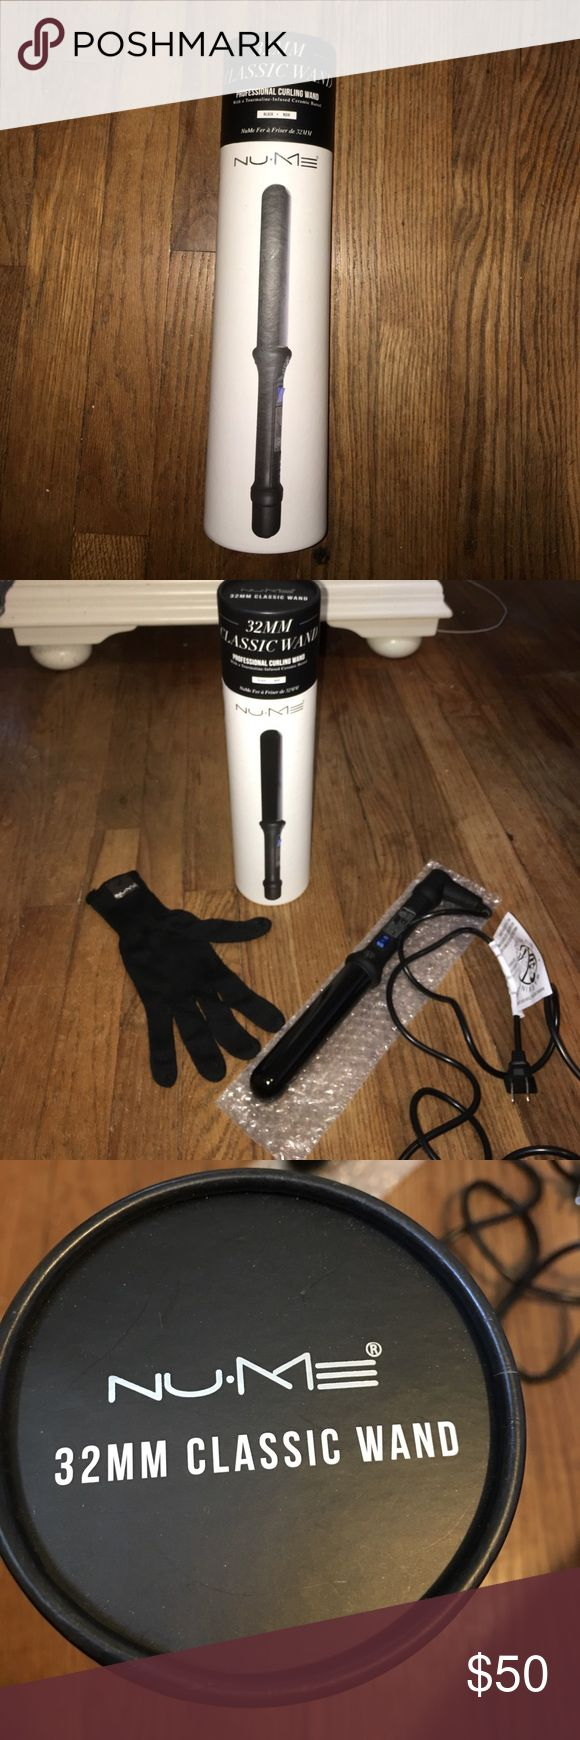 32MM Nume curling wand Gently used black Nume curling wand, tourmaline-infused ceramic barrel, and come with glove. Accessories Hair Accessories